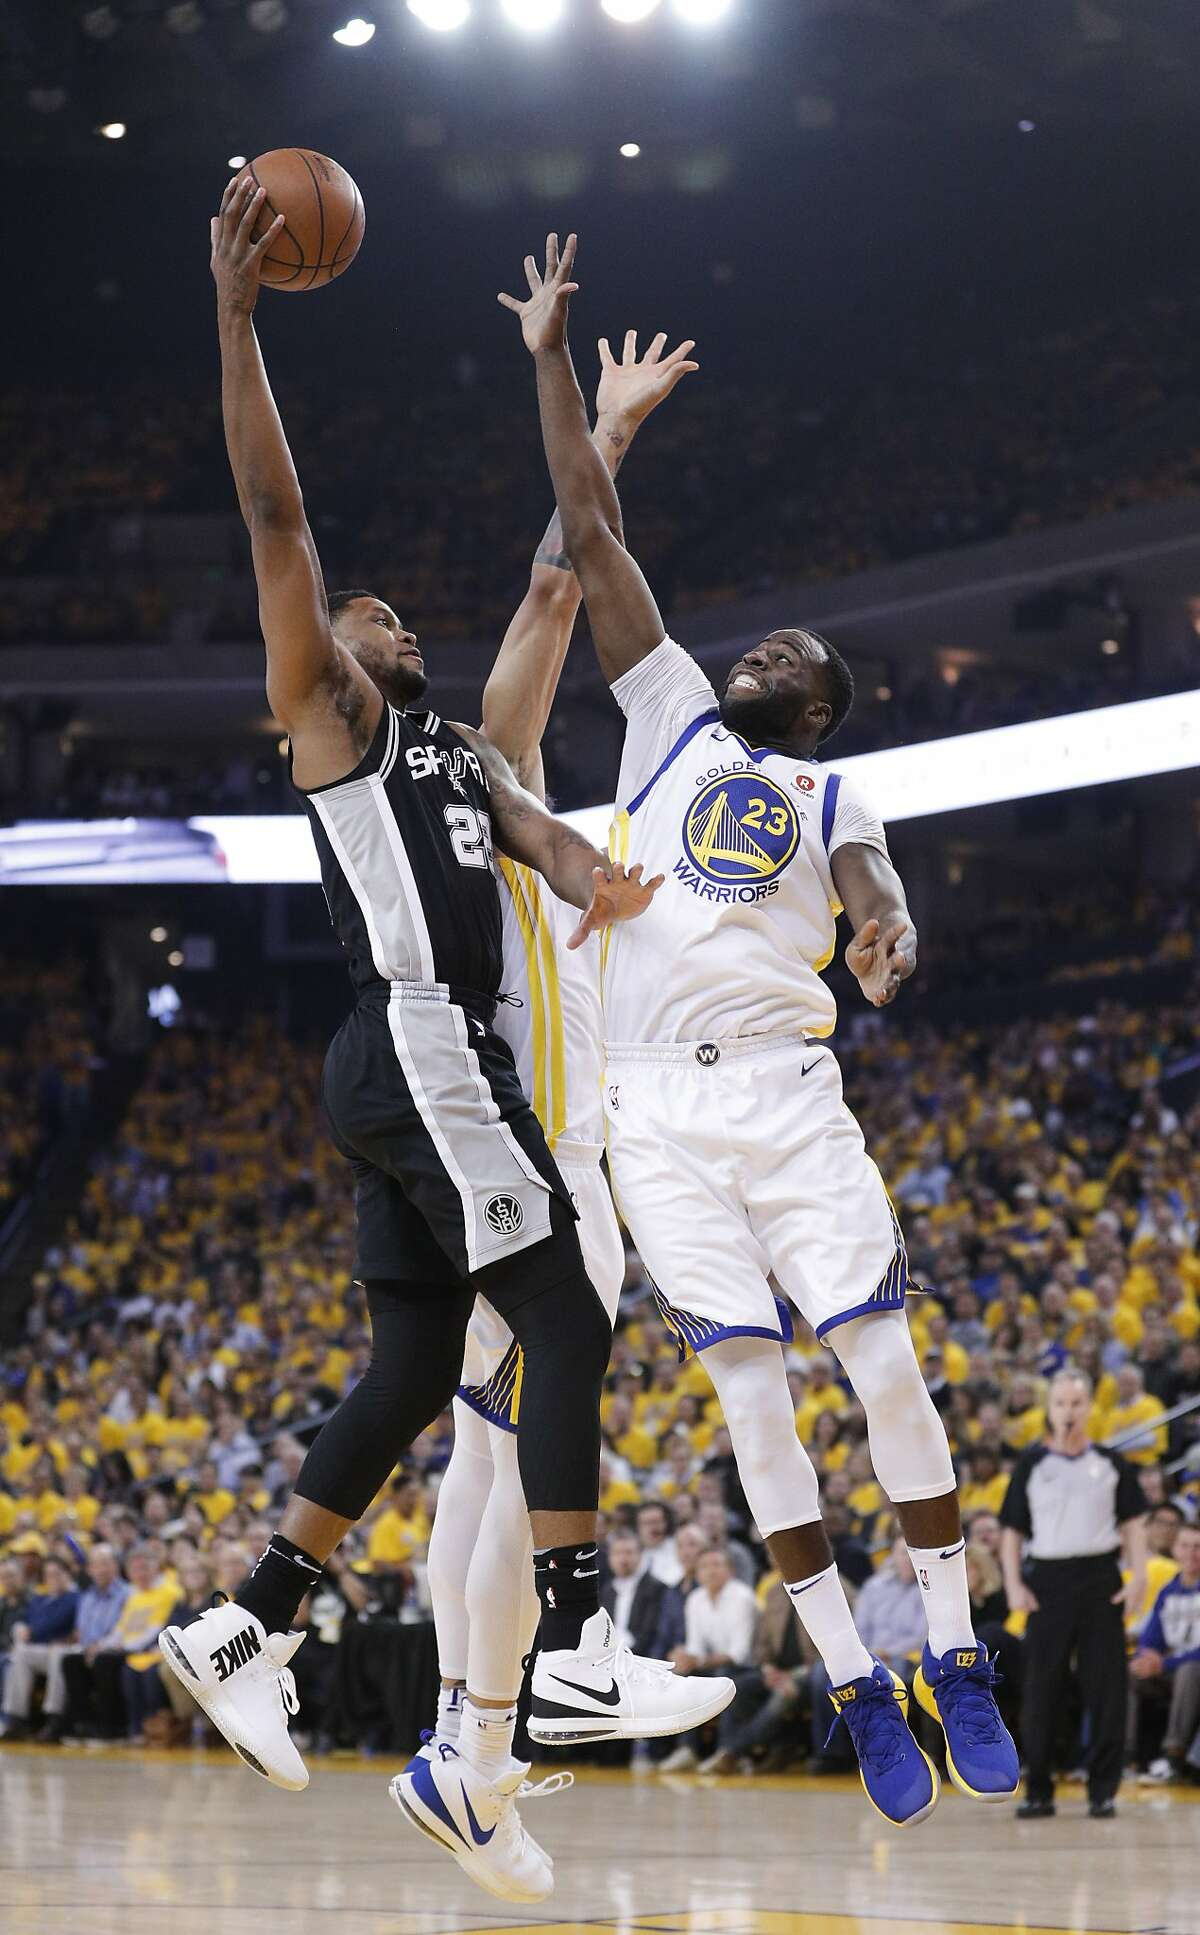 Golden State Warriors' Draymond Green defends against San Antonio Spurs' Rudy Gay in the first quarter during game 5 of round 1 of the Western Conference Finals at Oracle Arena on Tuesday, April 24, 2018 in Oakland, Calif.